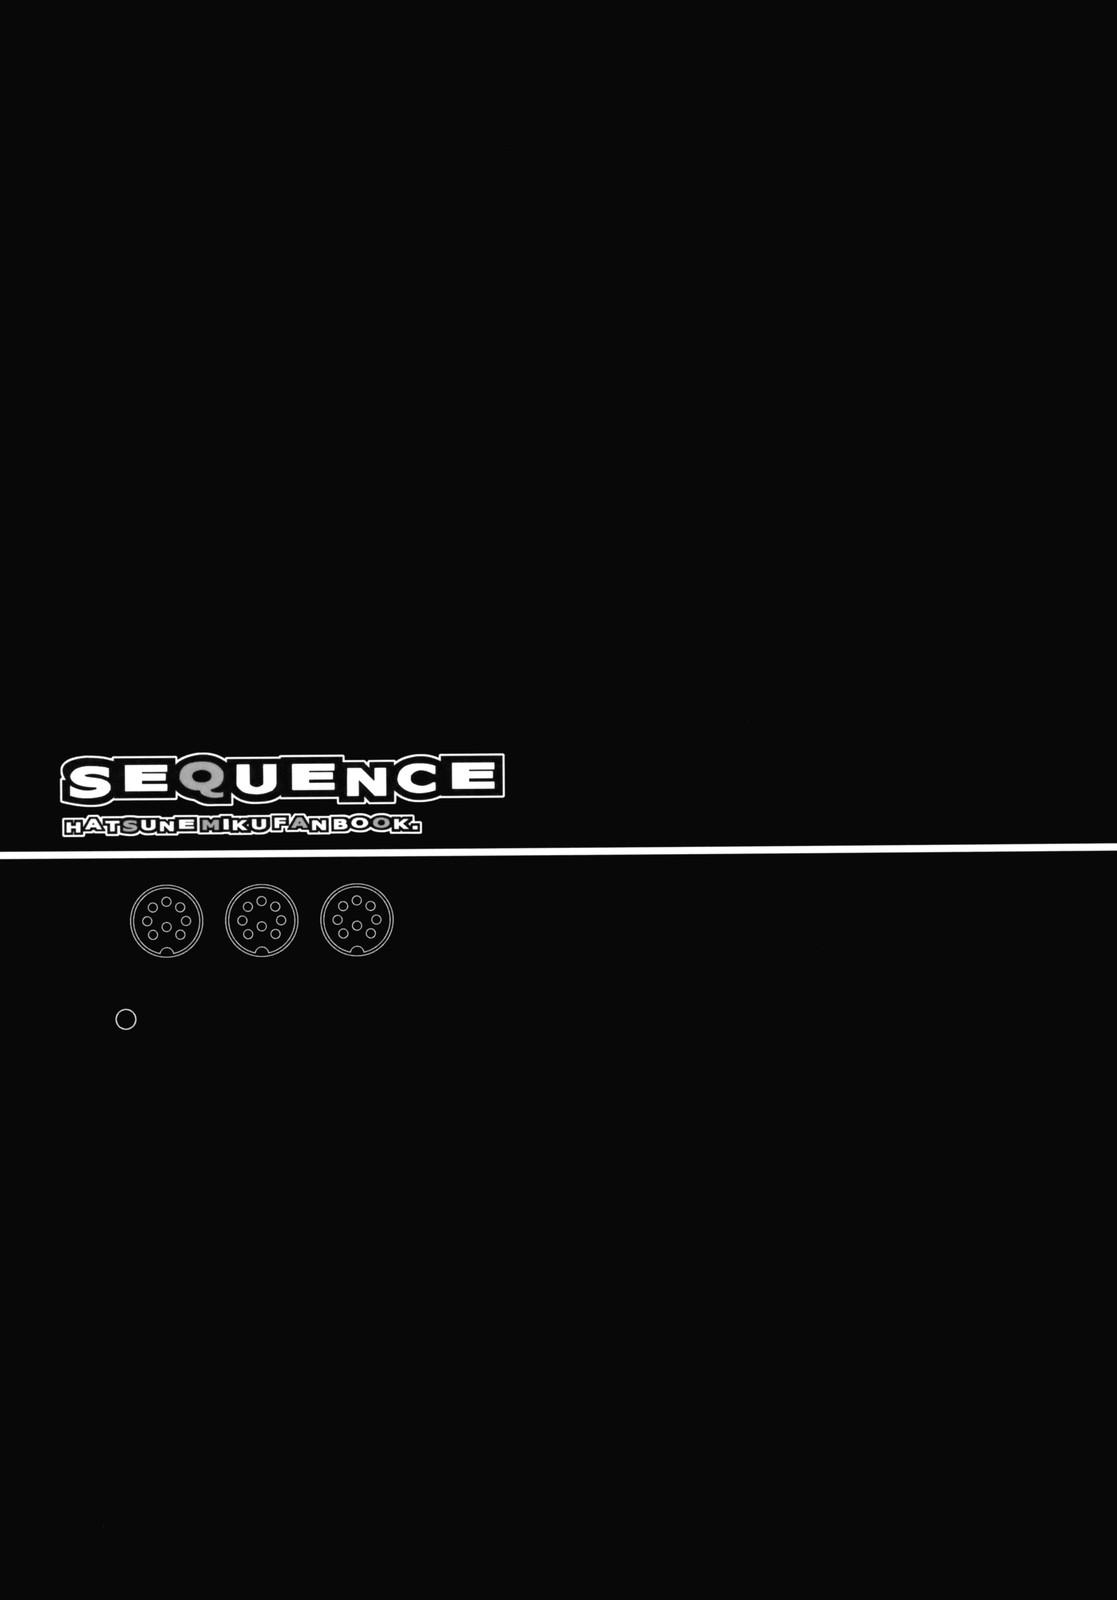 SEQUENCE 27